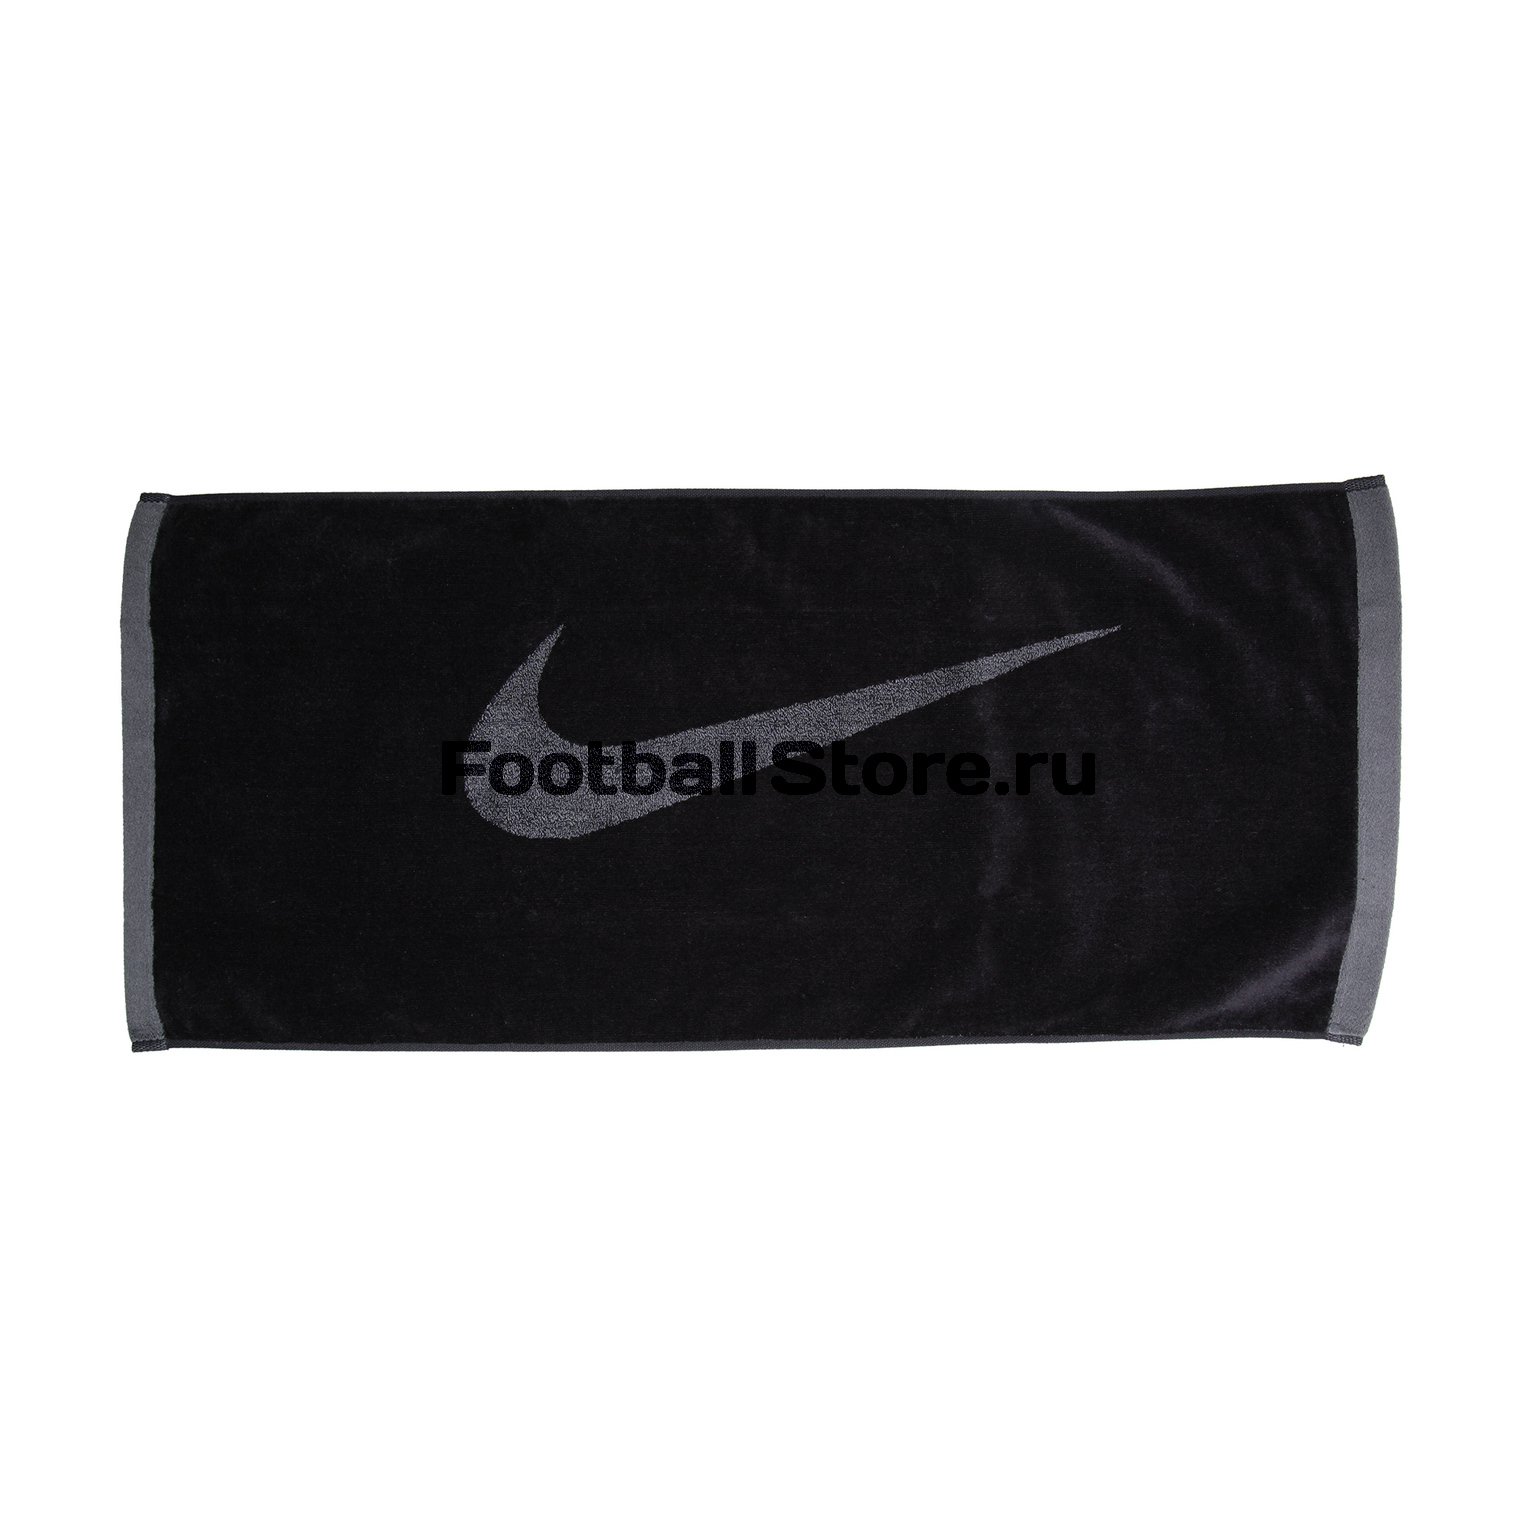 Полотенце Nike Sport Towel Black N.ET.13.046.MD аудиокнига rpg